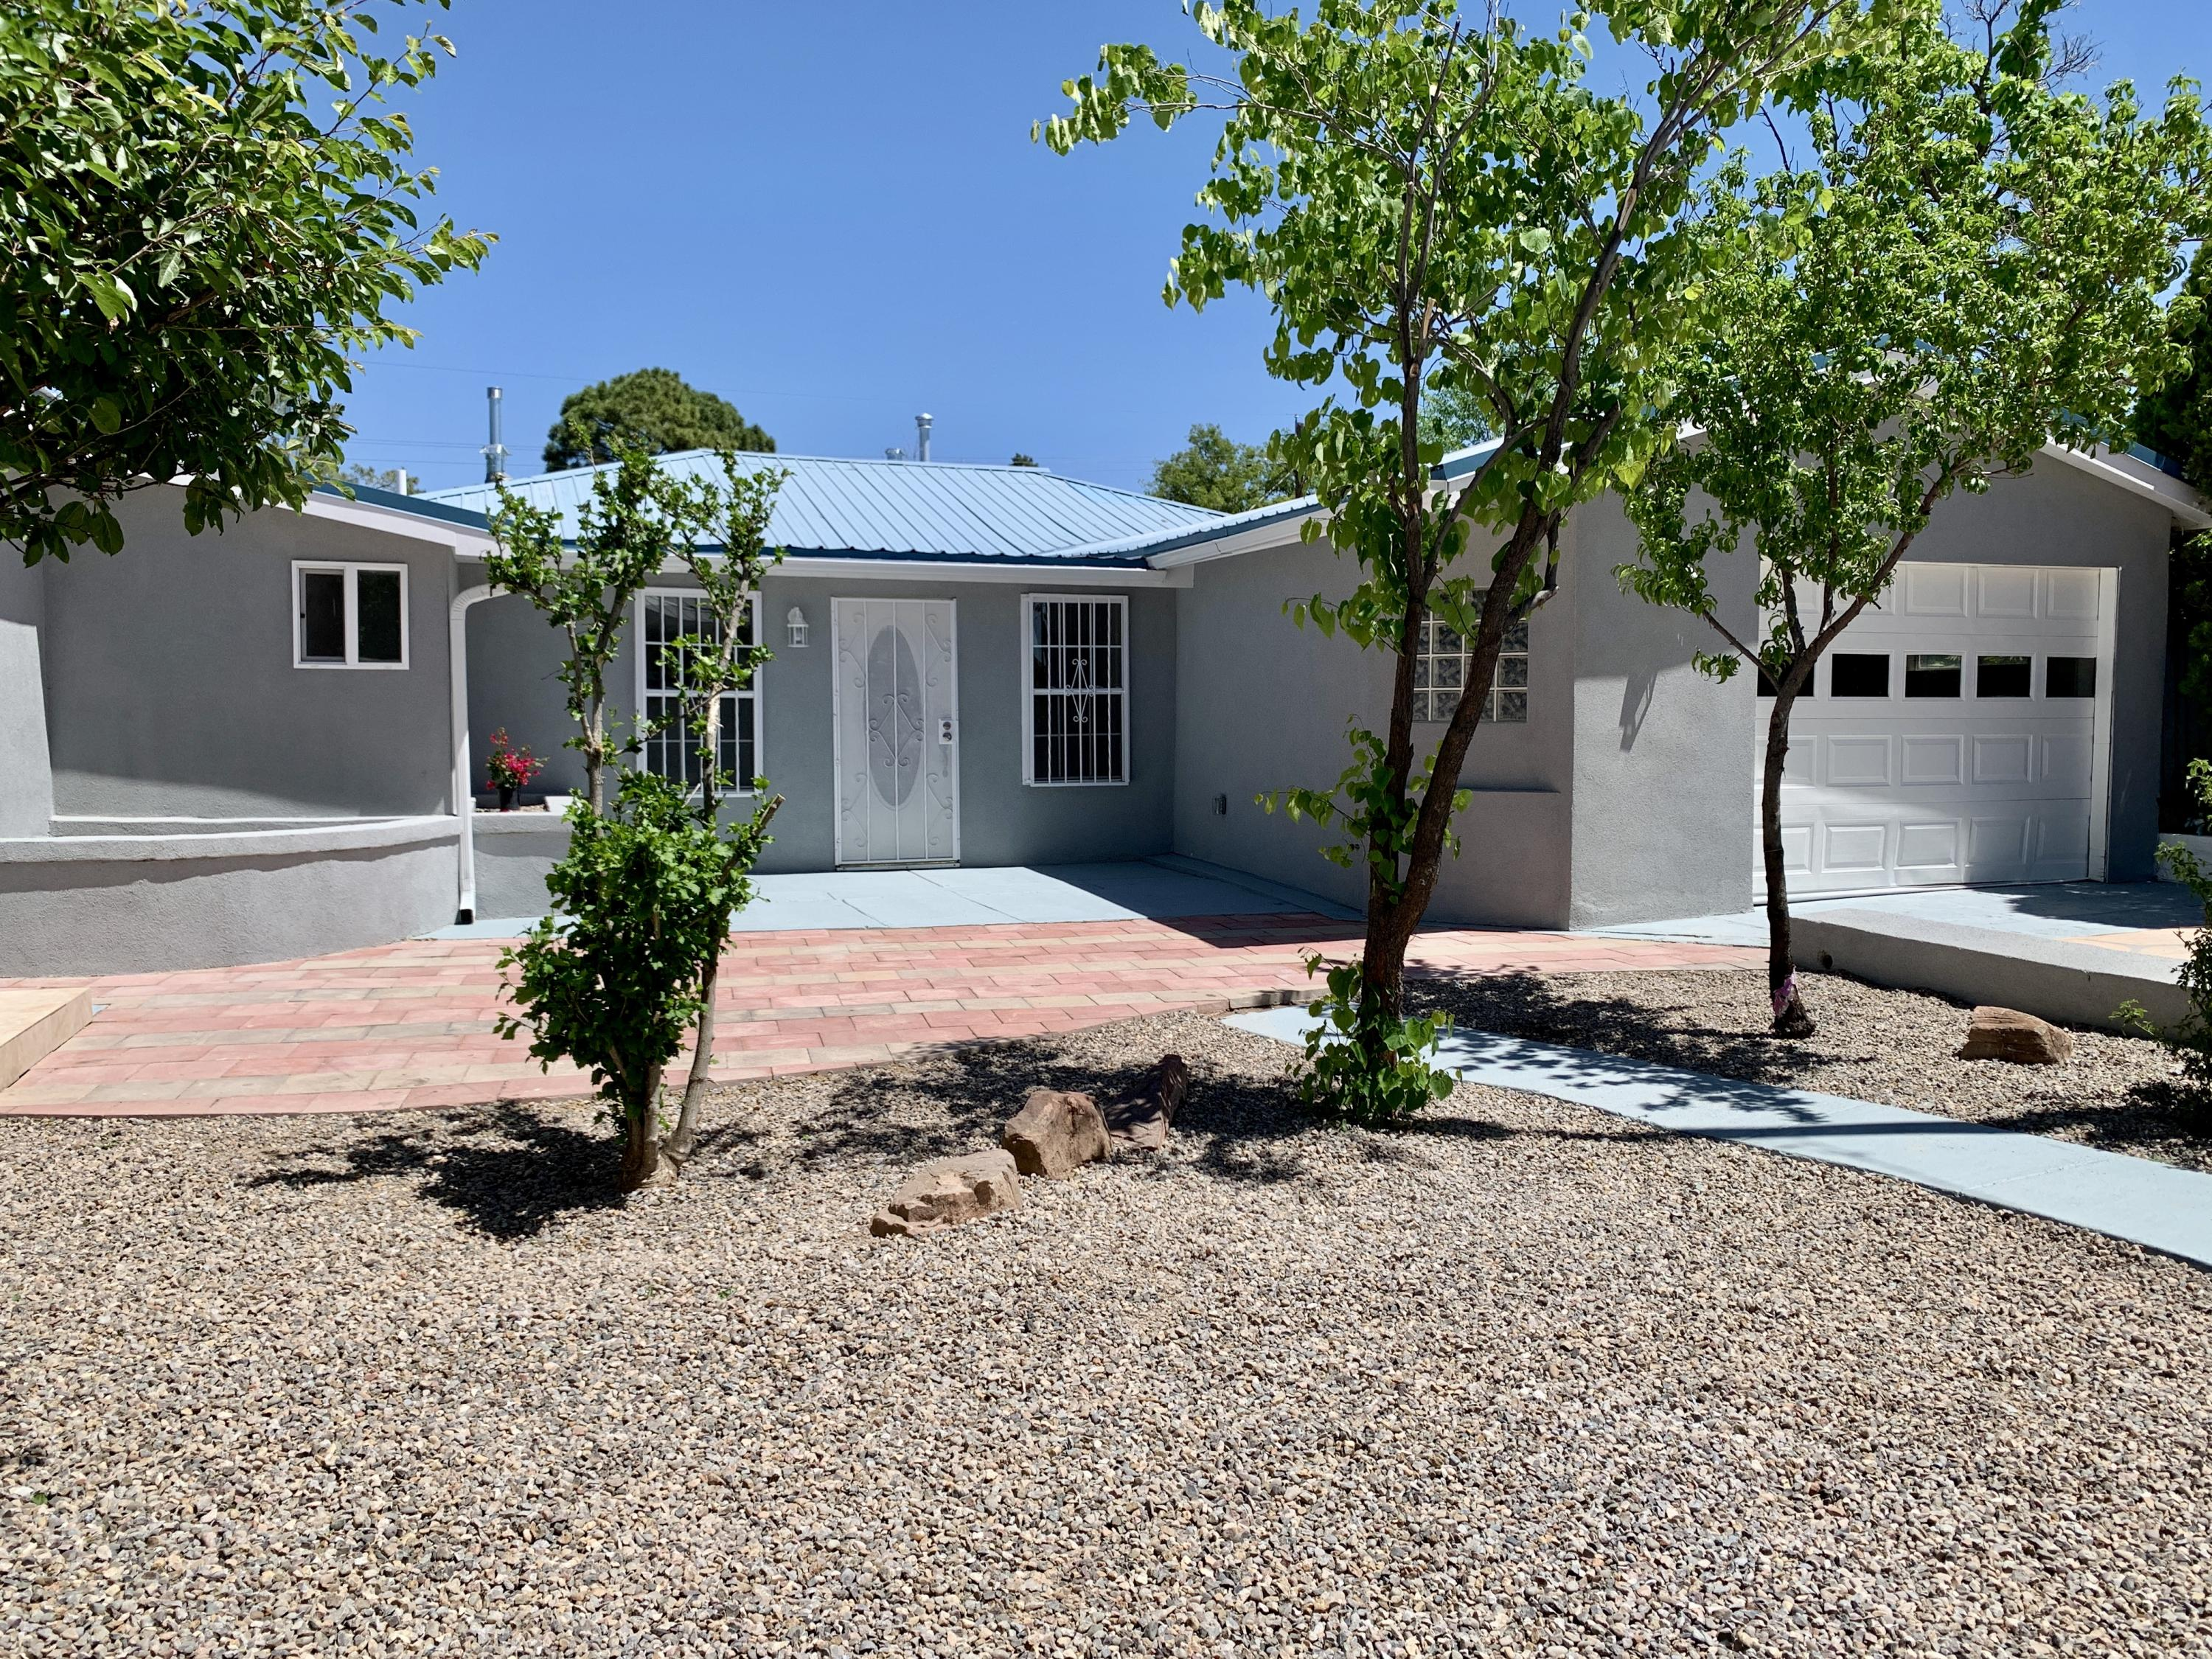 Nice family home with 5 bedrooms, 4 bathrooms, 2 living rooms 1 with fireplace, beautiful new kitchen with granite counter-tops & new appliances, pantry, spacious laundry room with washer & dryer,  finished garage, front, back & side yard, carport/workshop with plenty of parking, fenced with 2 separate gate entrances, this amazing home has been newly remodeled including new electrical, plumbing, water heater, A/C & Heating, gas lines, carpet, tile, paint, windows, doors, stucco , gutters, vanities & fixtures . centrally located near i40 & 12th st. come take a look !